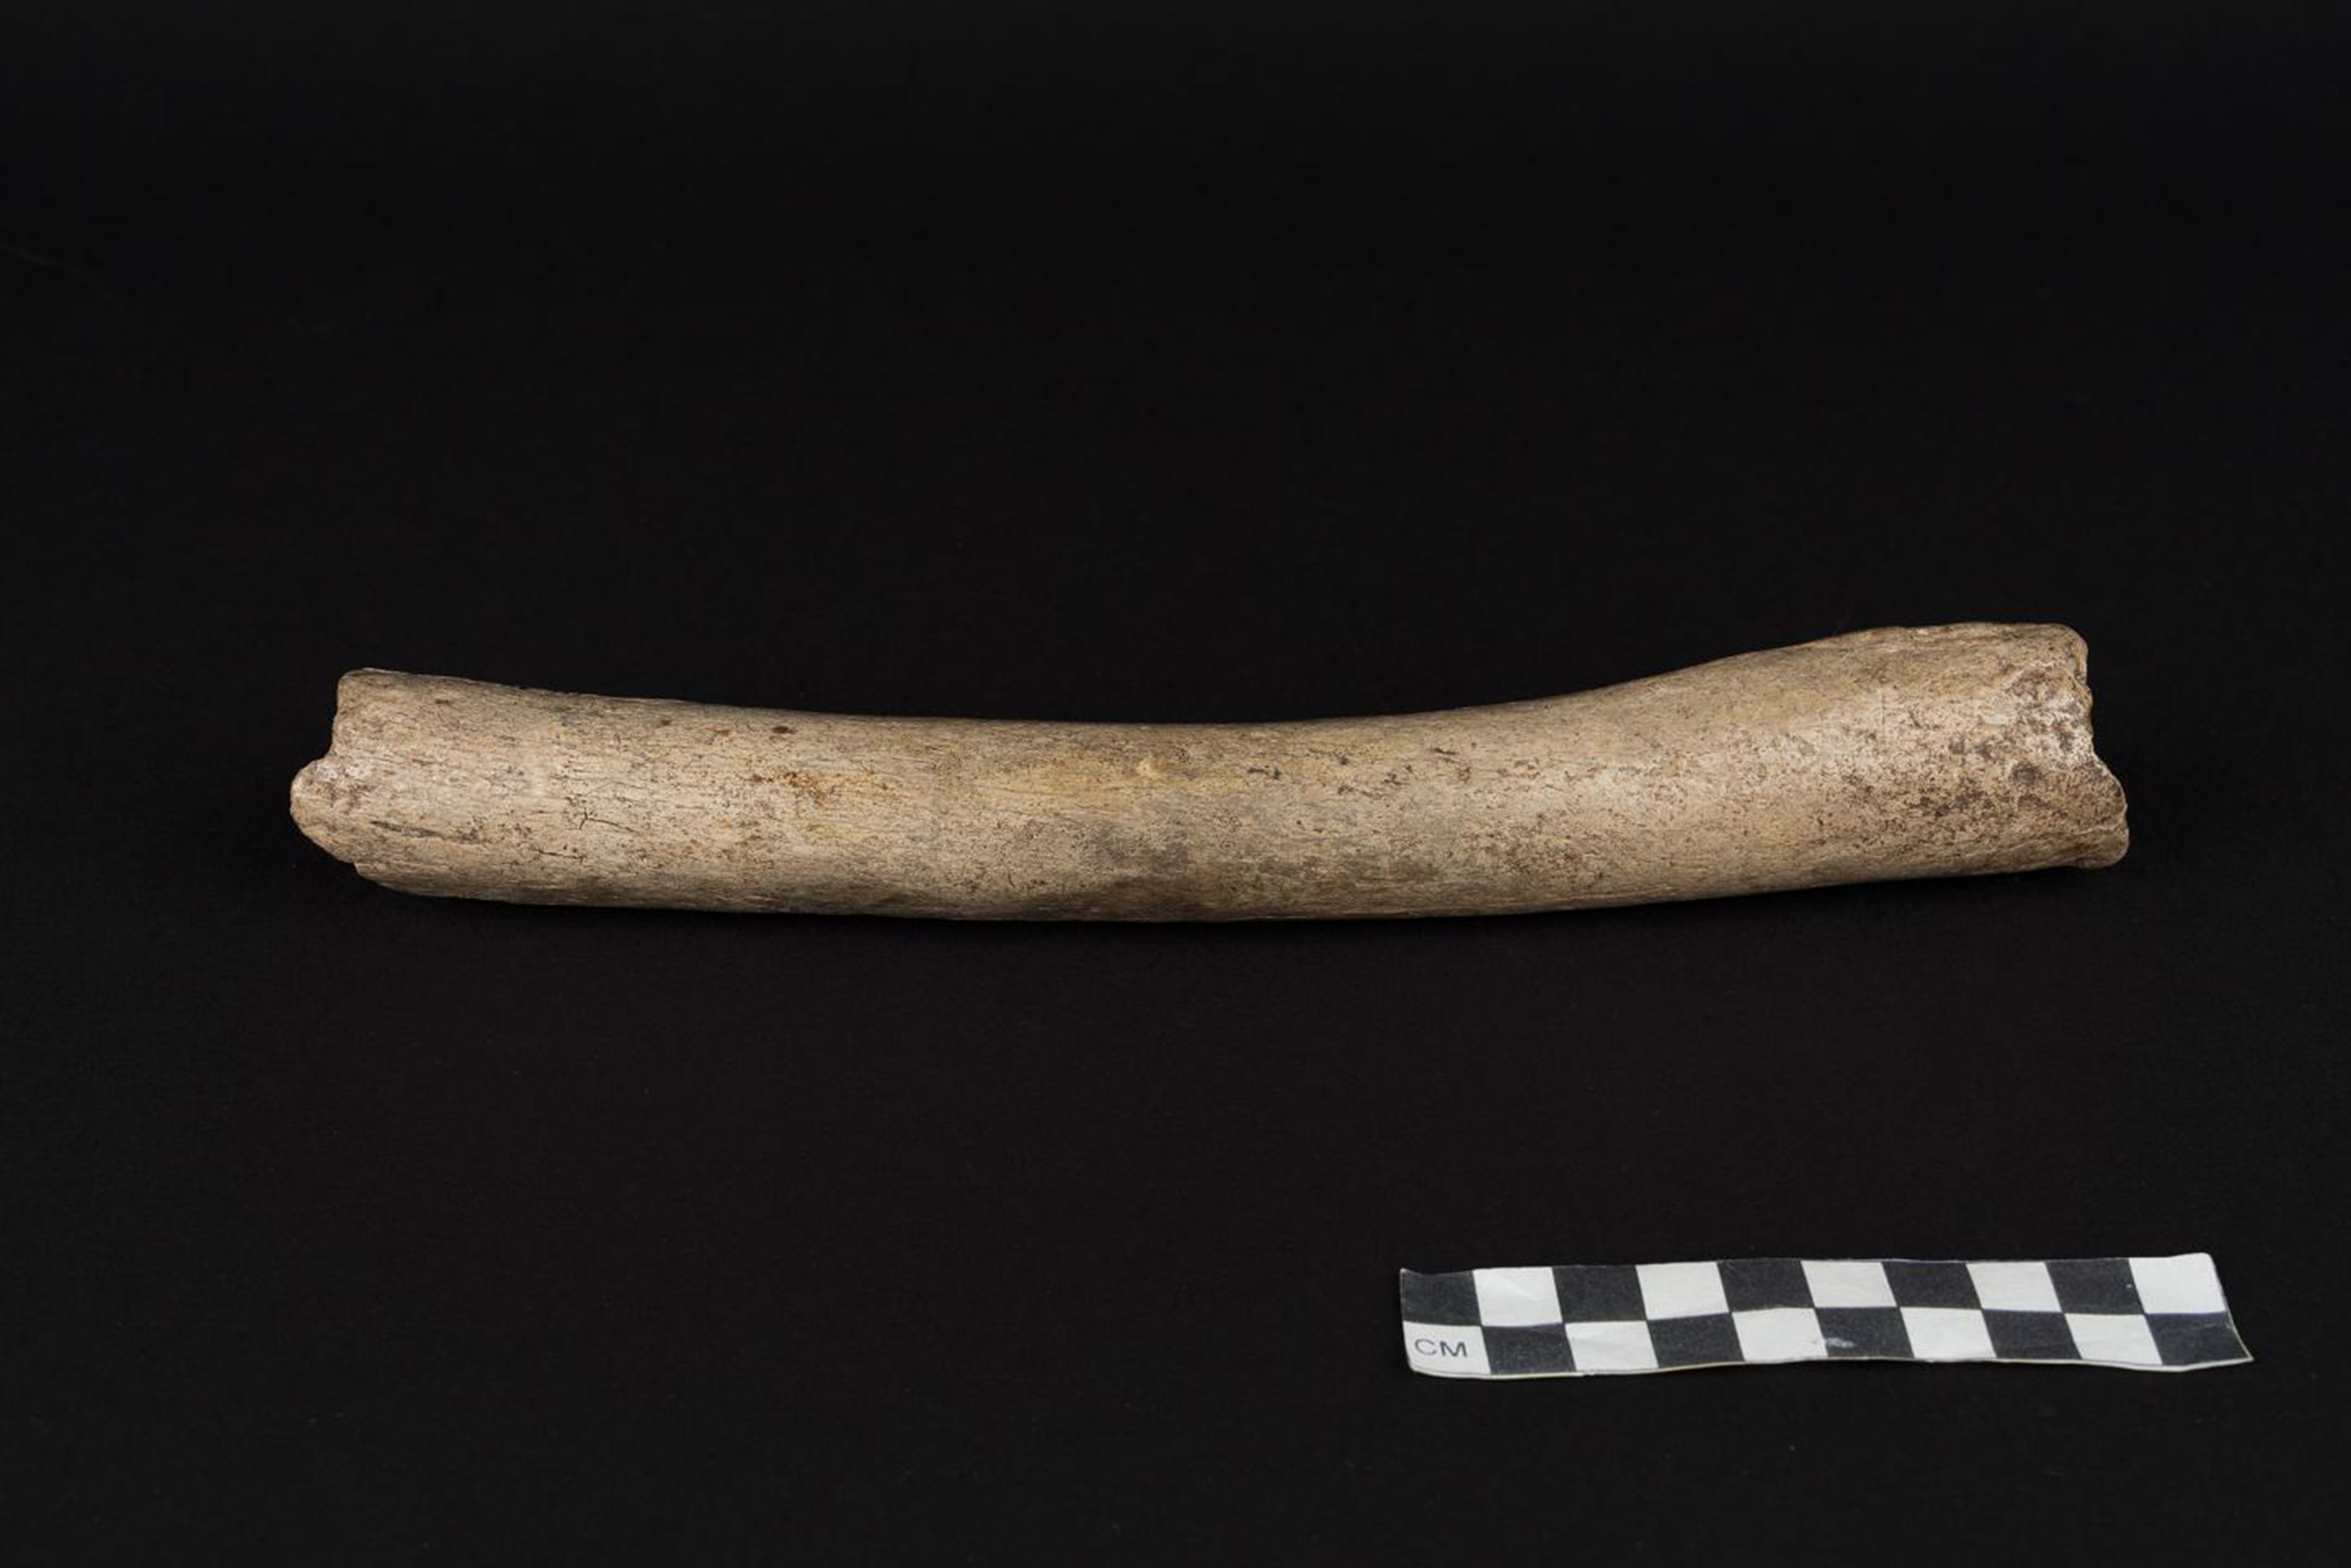 The femur bone from which mitochondrial DNA was extracted.